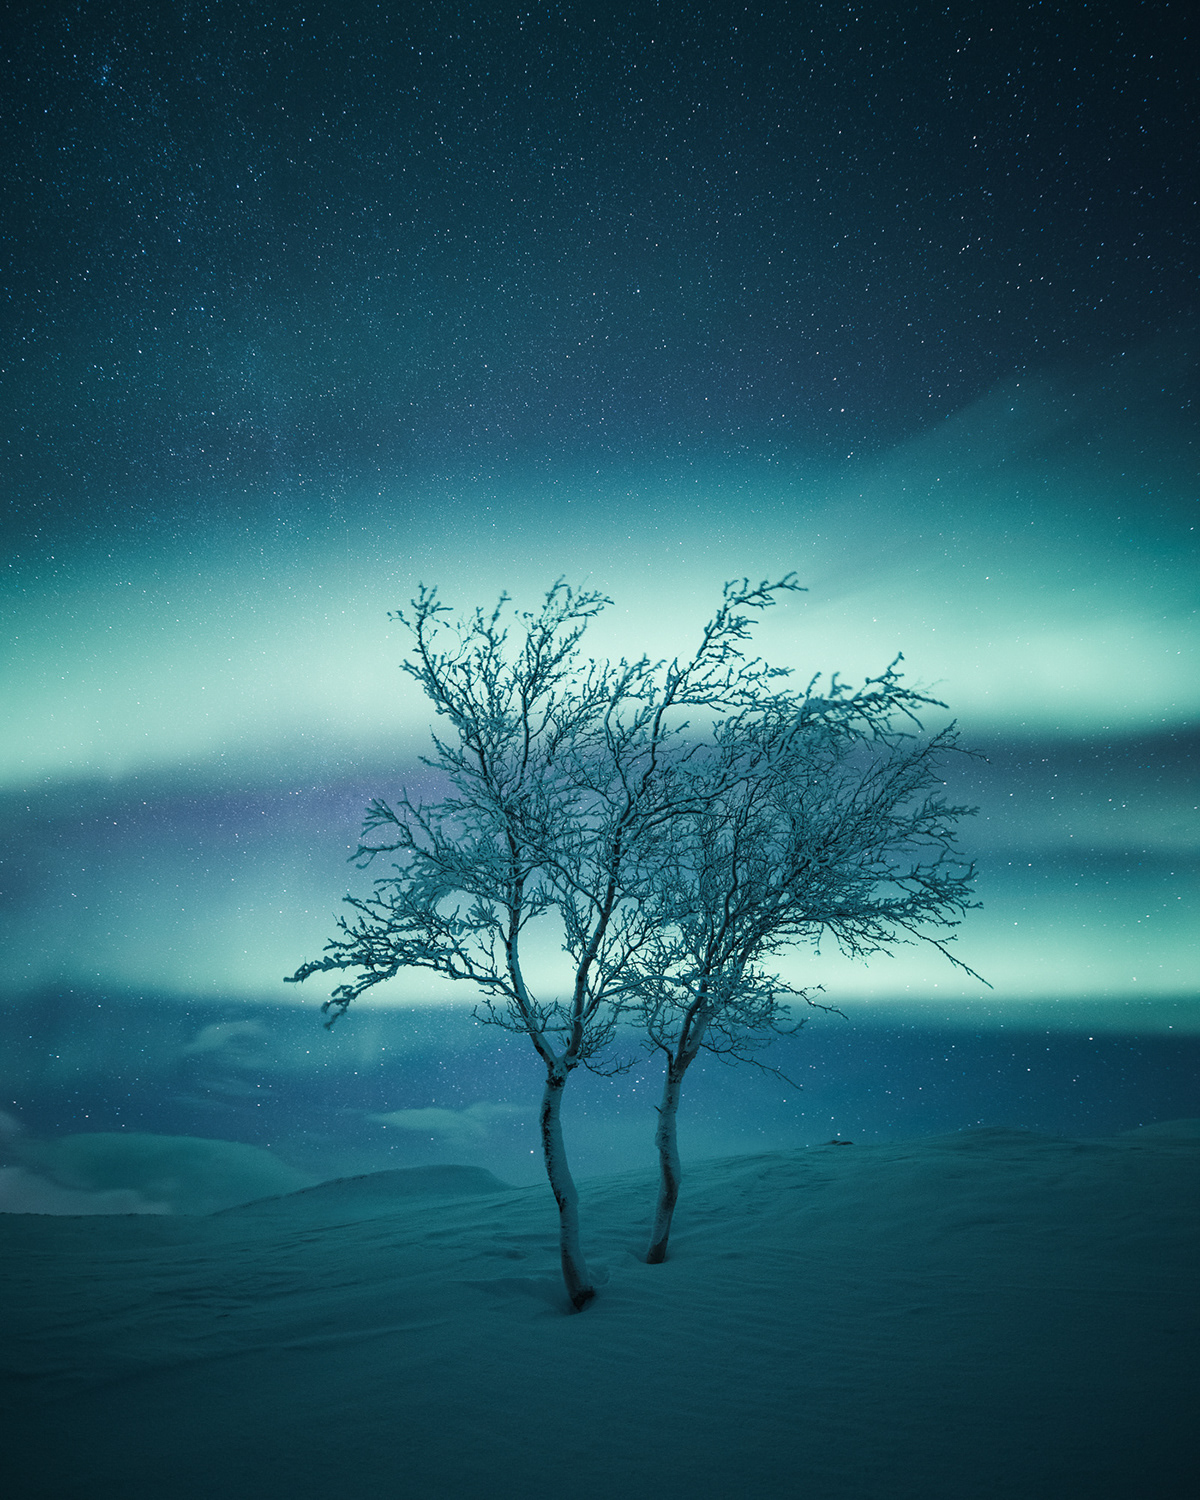 Trees of the North by Mikko Lagerstedt